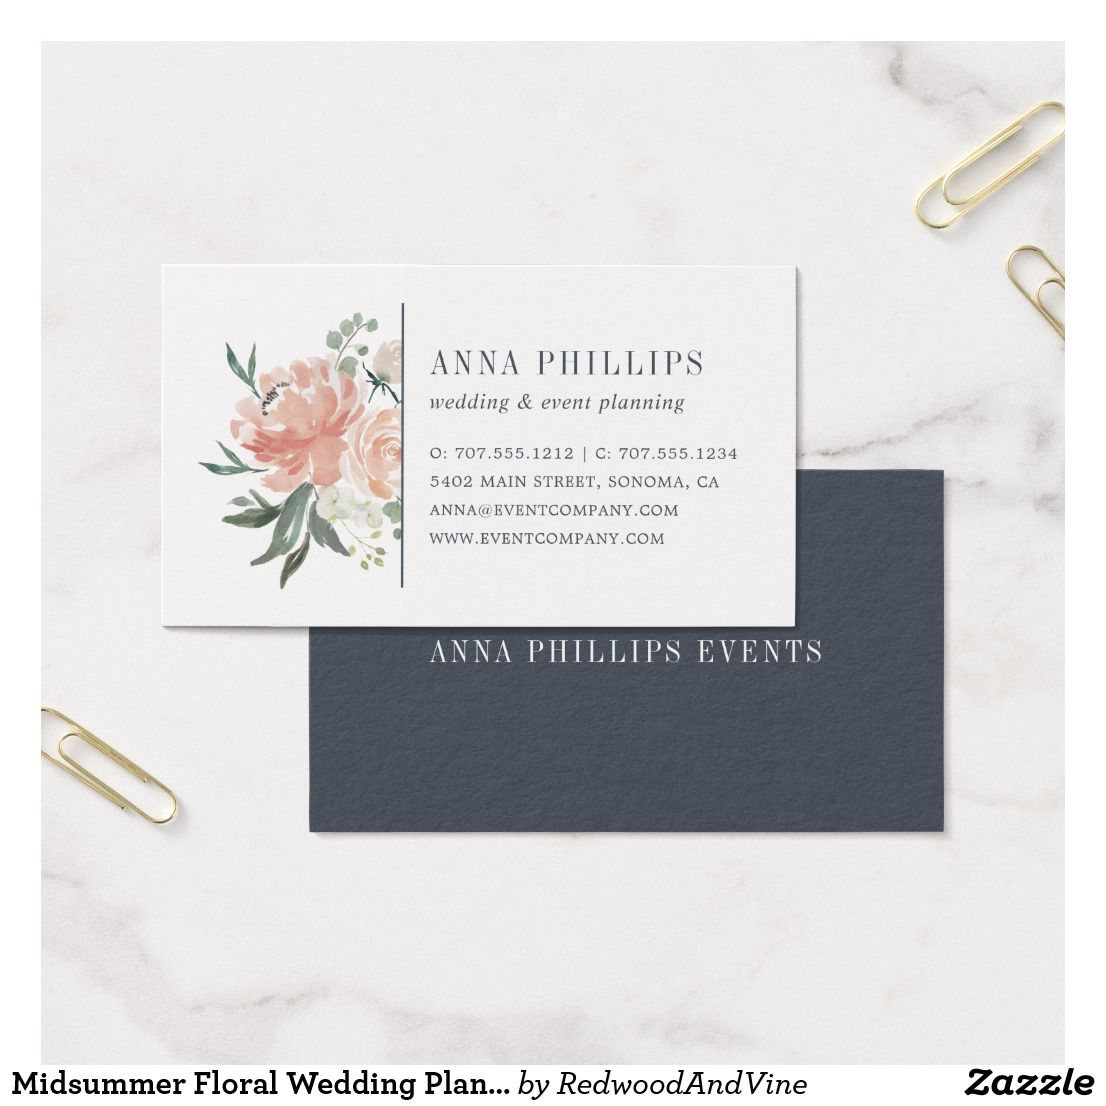 midsummer floral wedding planner business card elegant business cards for florists floral designers wedding planners event planners or other wedding - Wedding Planner Business Cards